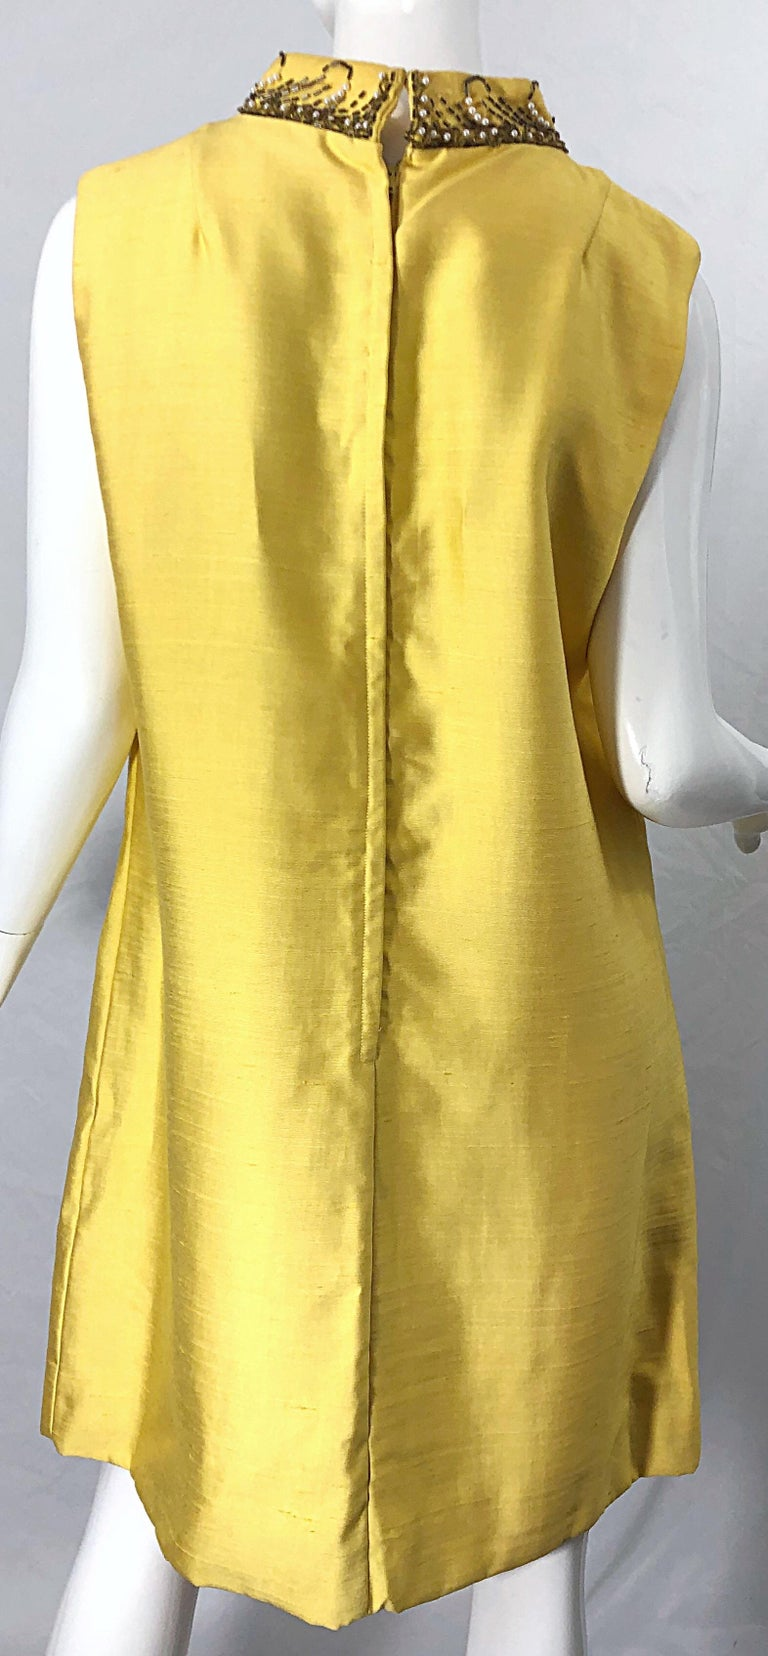 1960s Large size Yellow Beaded Rhinestone Silk Shantung Vintage 60s Shift Dress For Sale 3